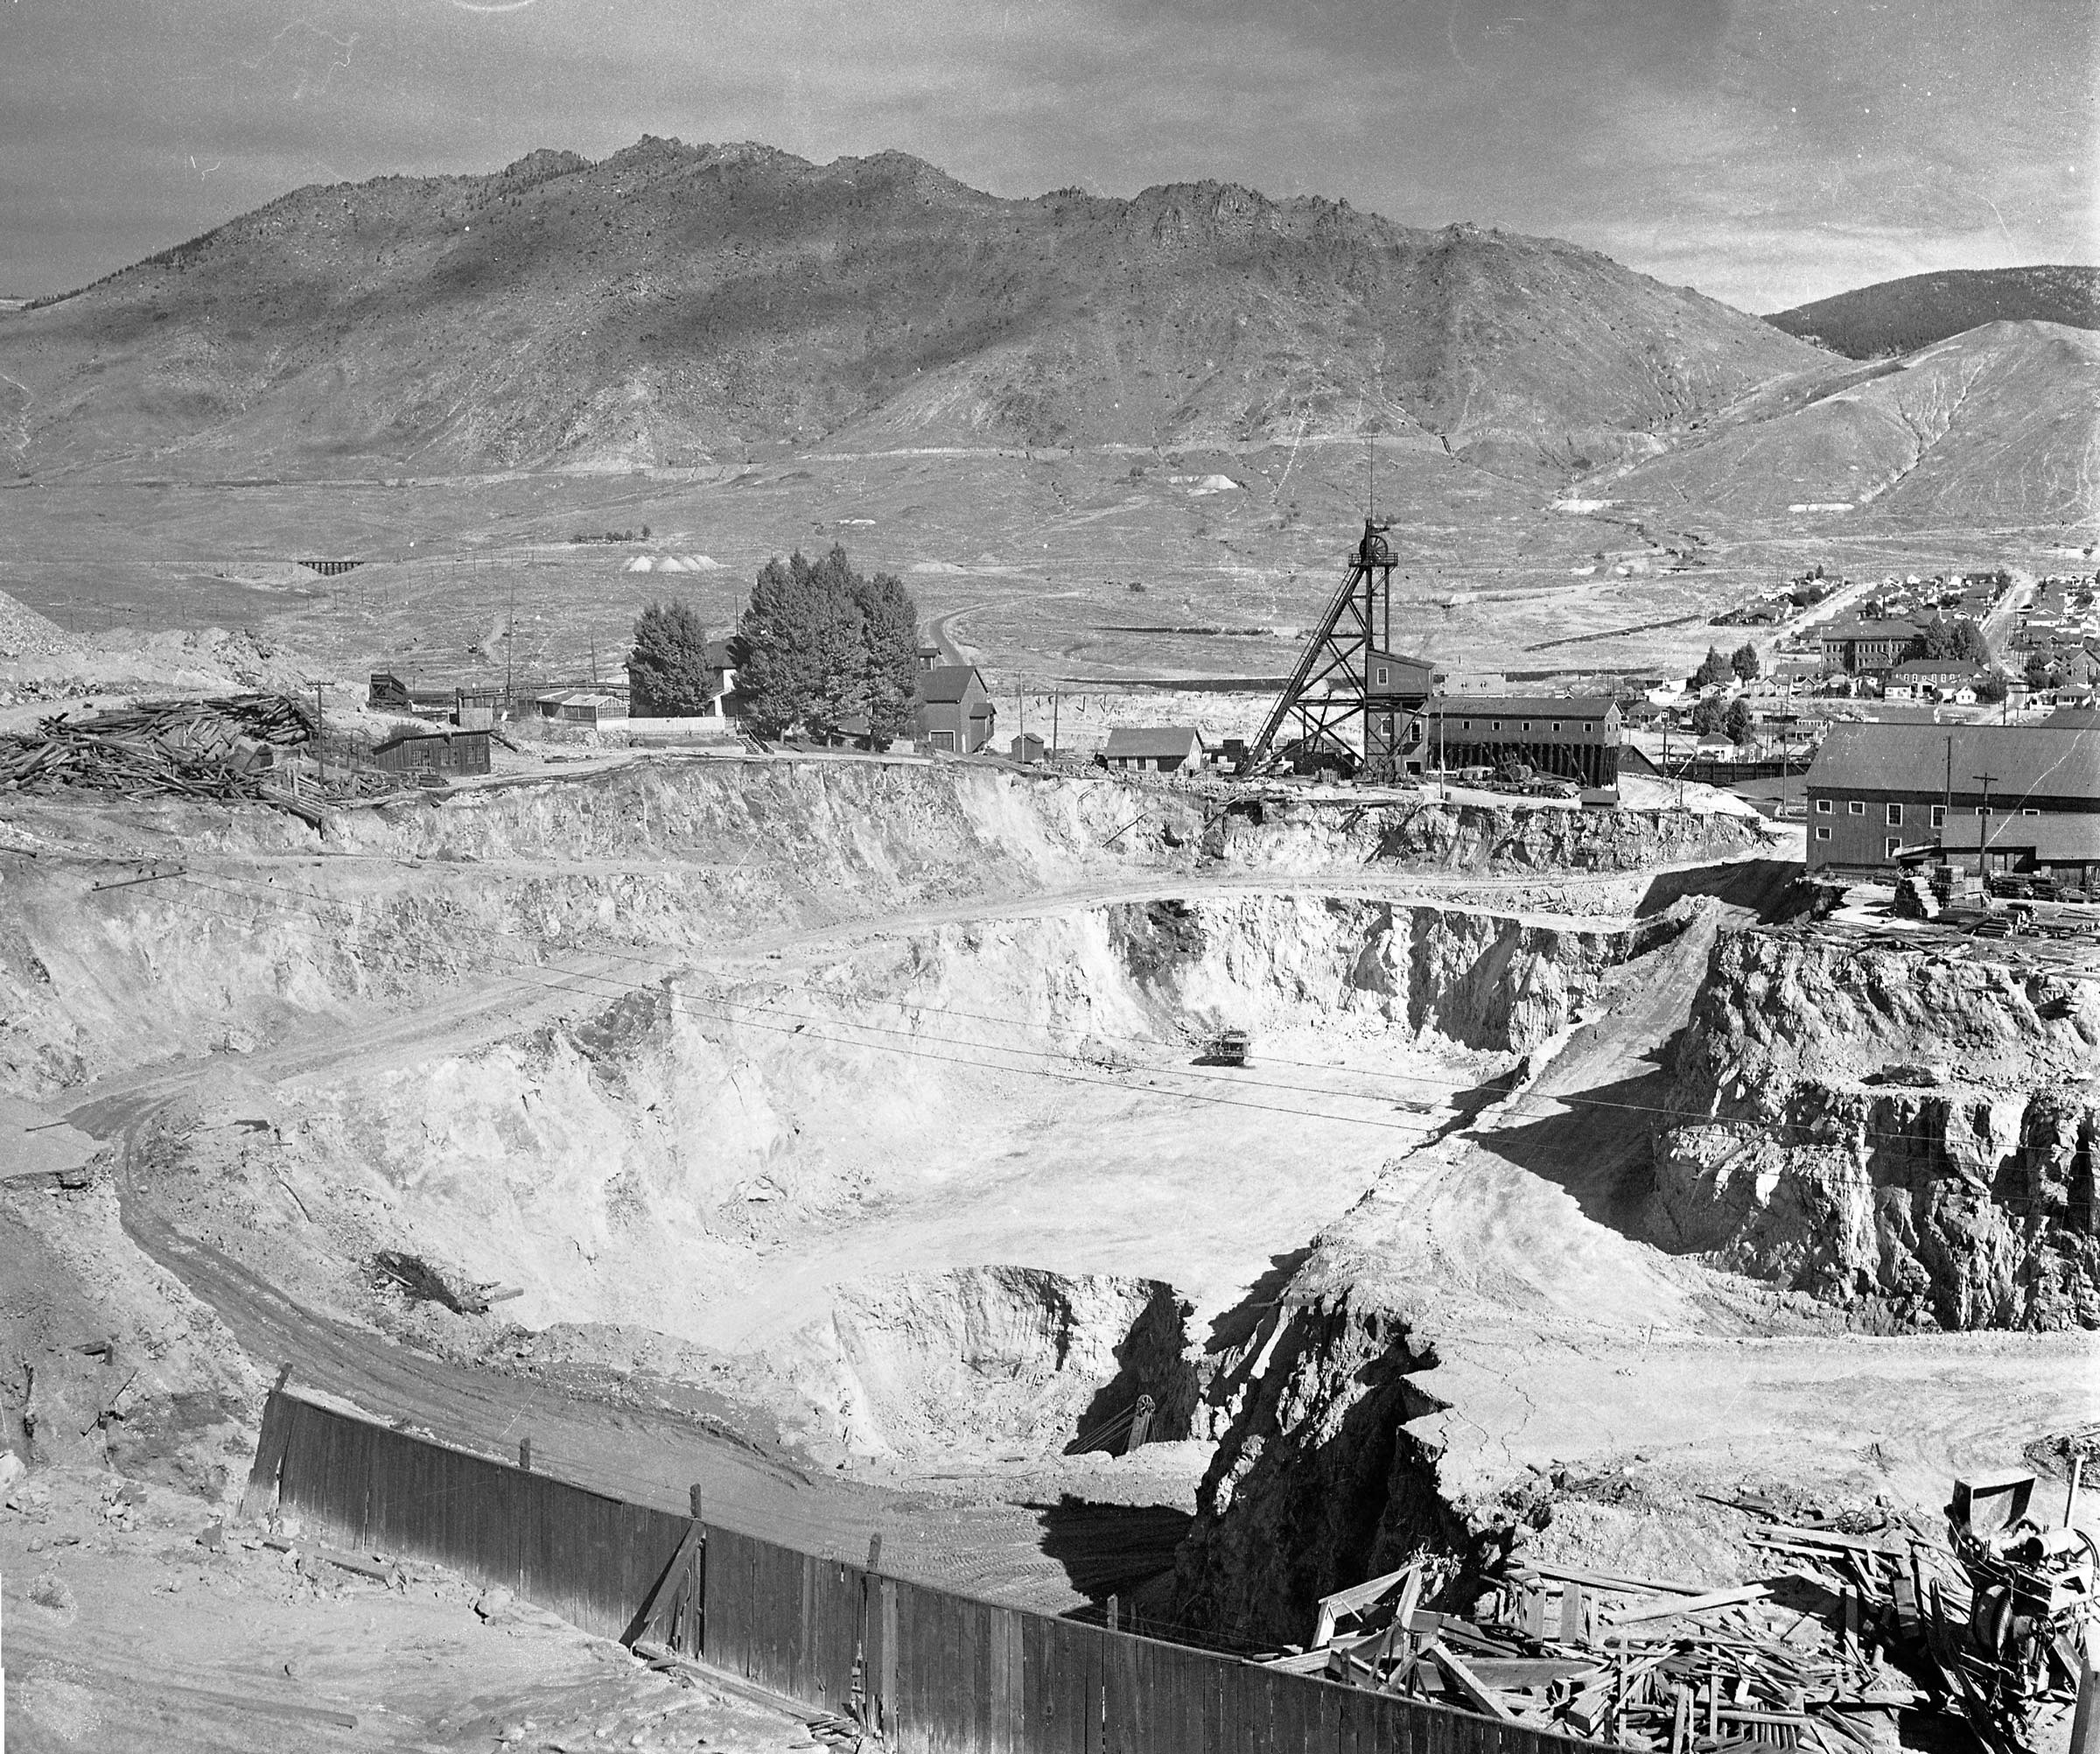 Berkeley Pit 1955. Photo courtesy of the Butte-Silver Bow Public Archives.